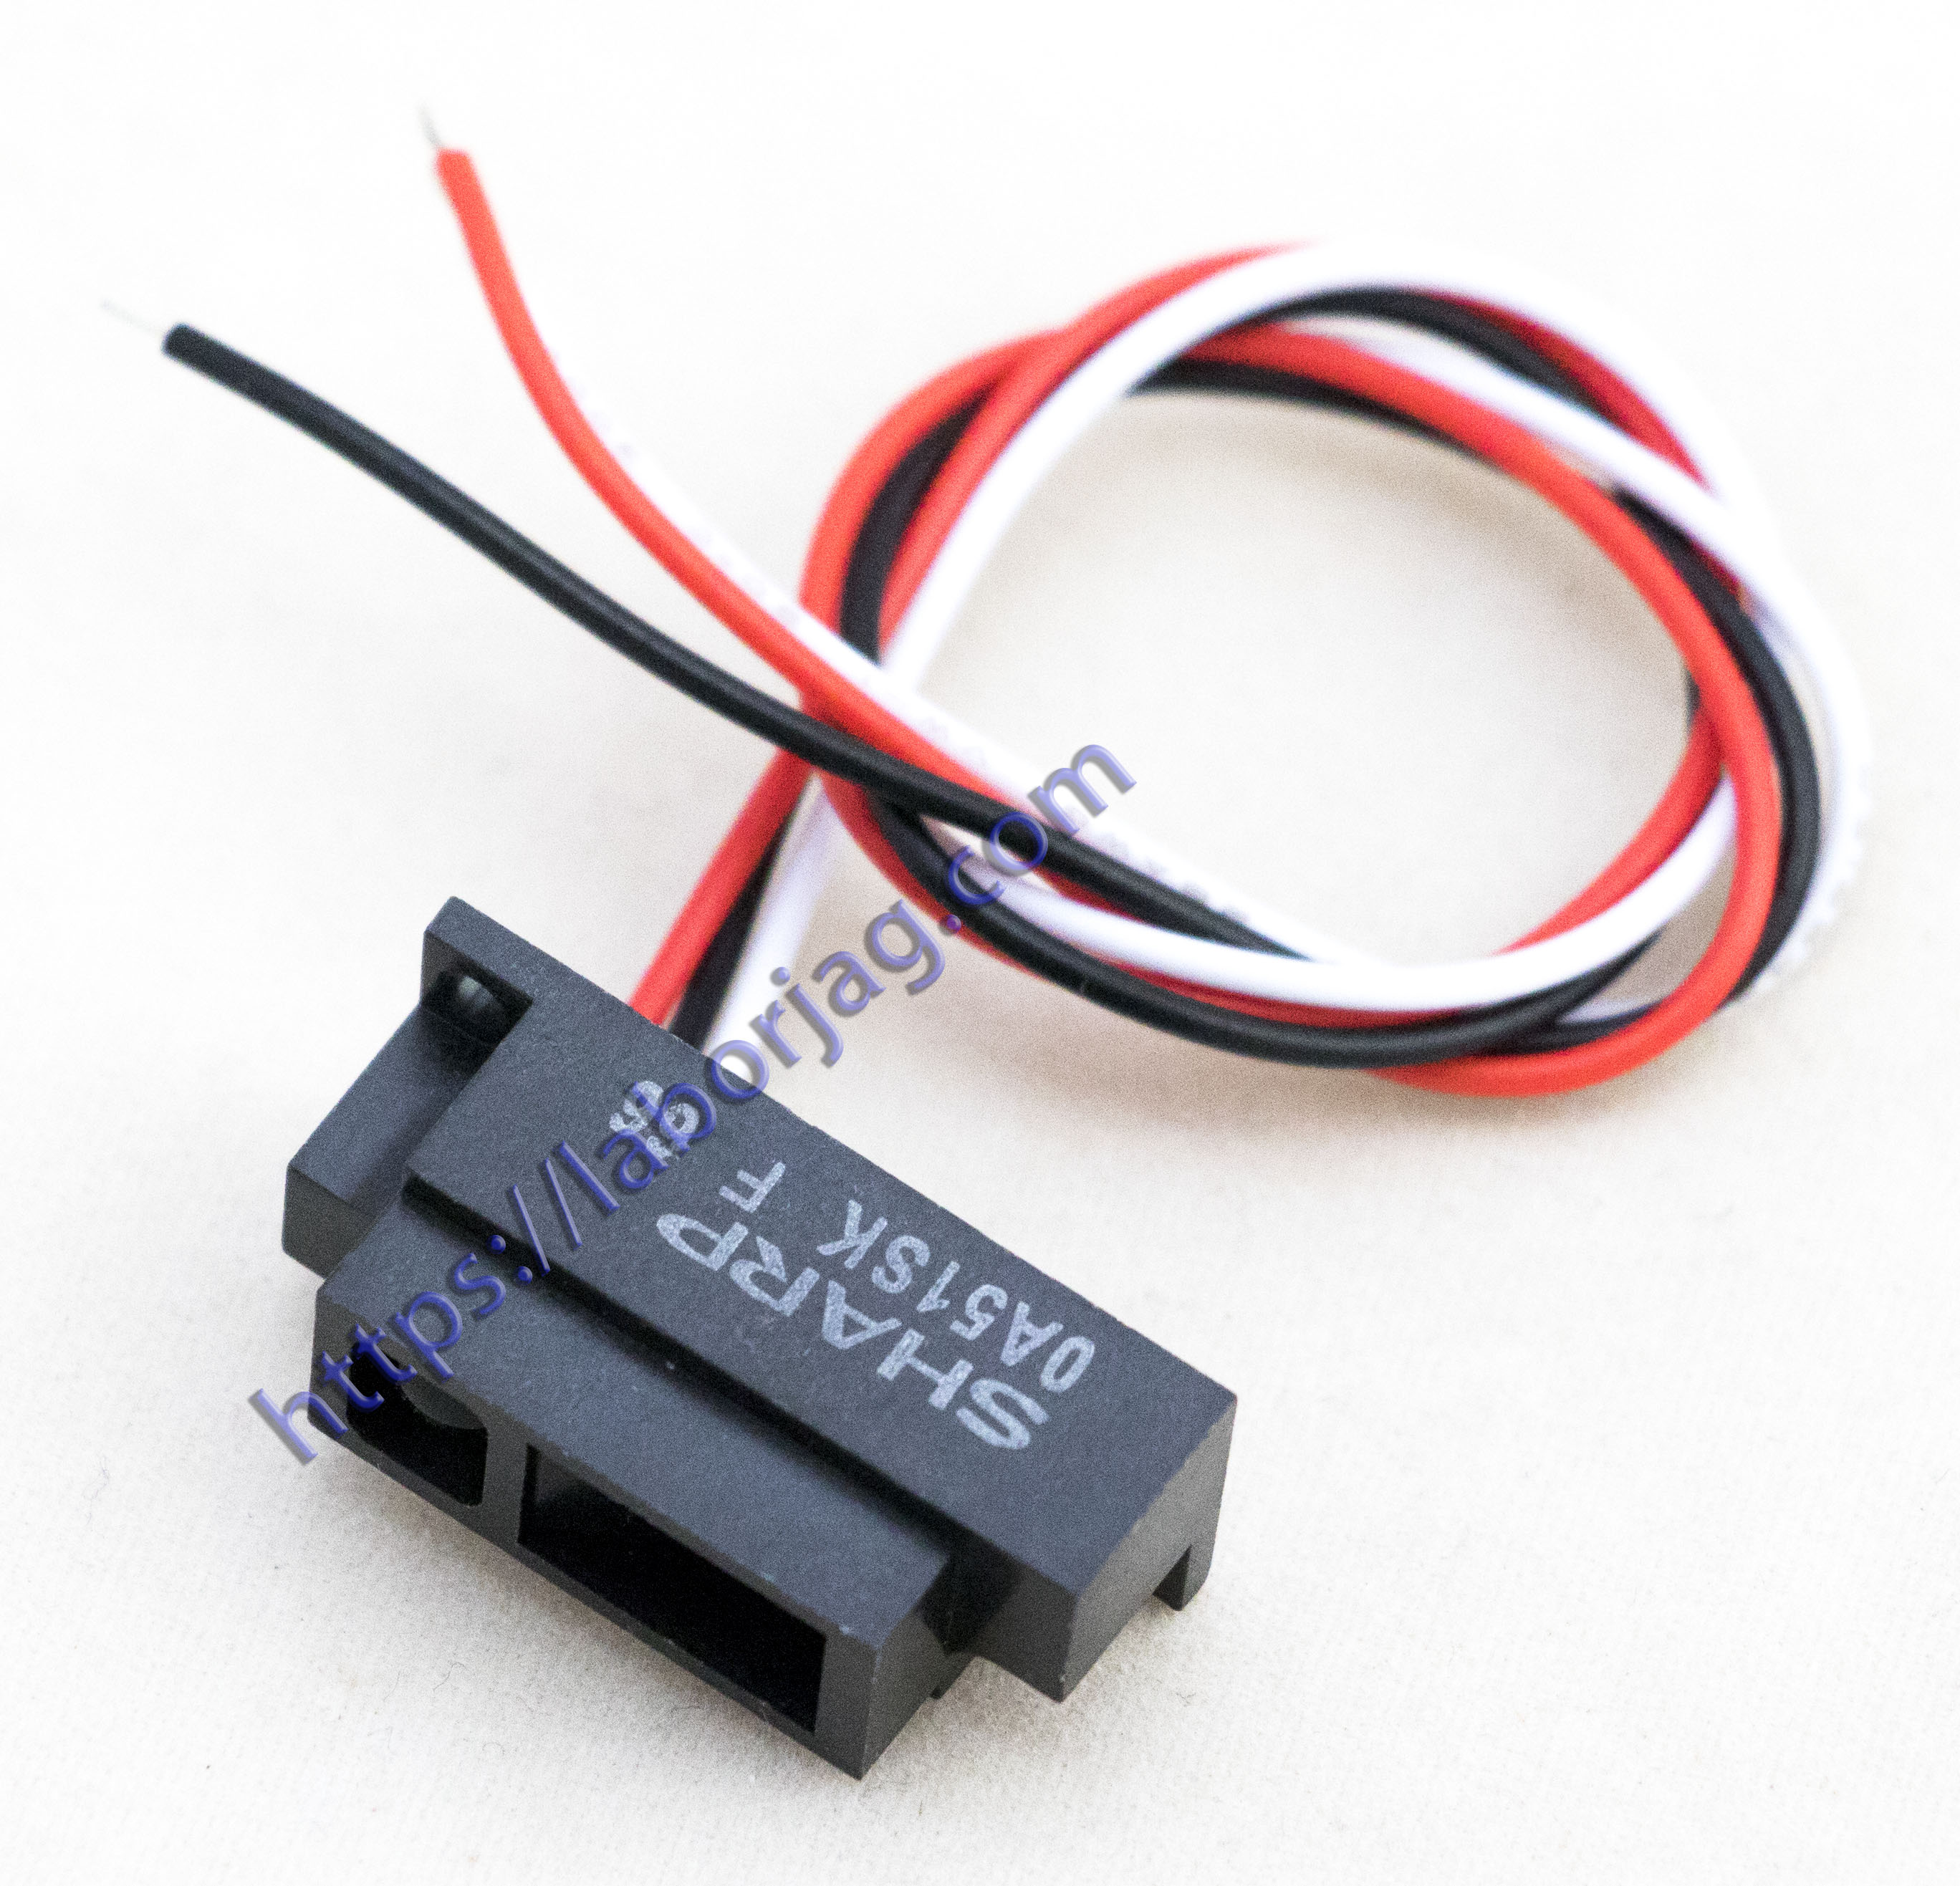 Sharp Ir Sensor Gp2y0a51sk0f Borja Home Page Repeater Circuit Electronic Components